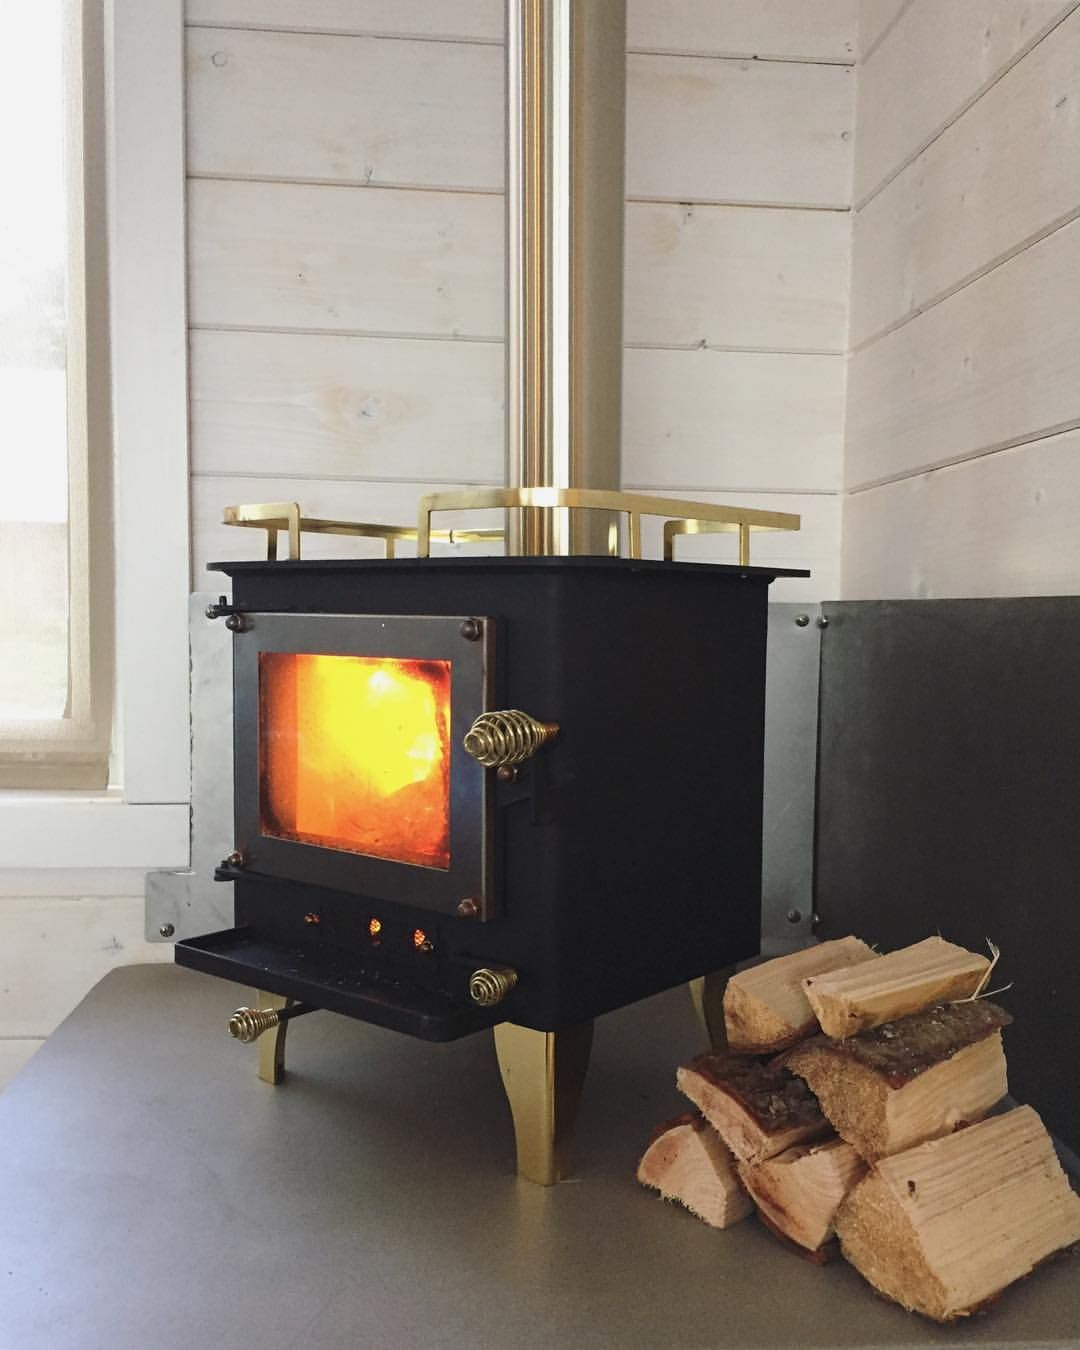 Tiny house wood stove Aprofitar espai Pinterest Tiny houses